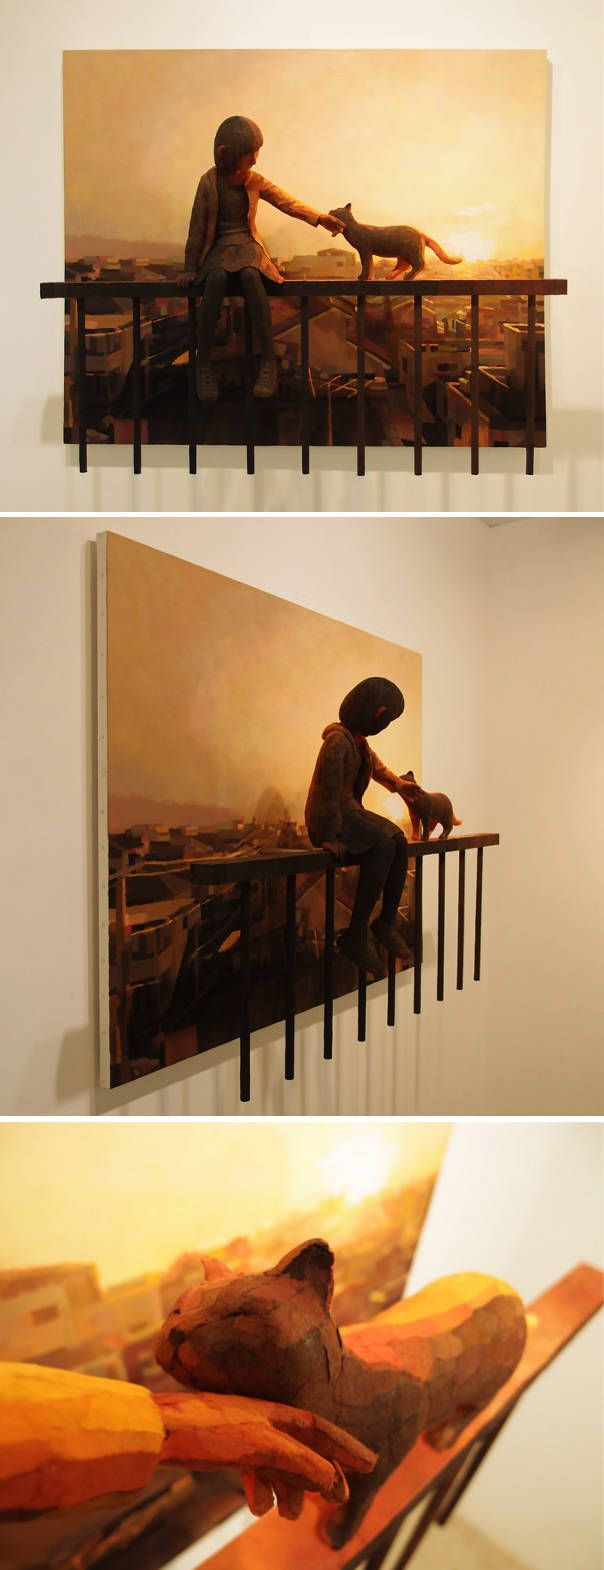 works that combine 2D and 3D by Shintaro Ohata